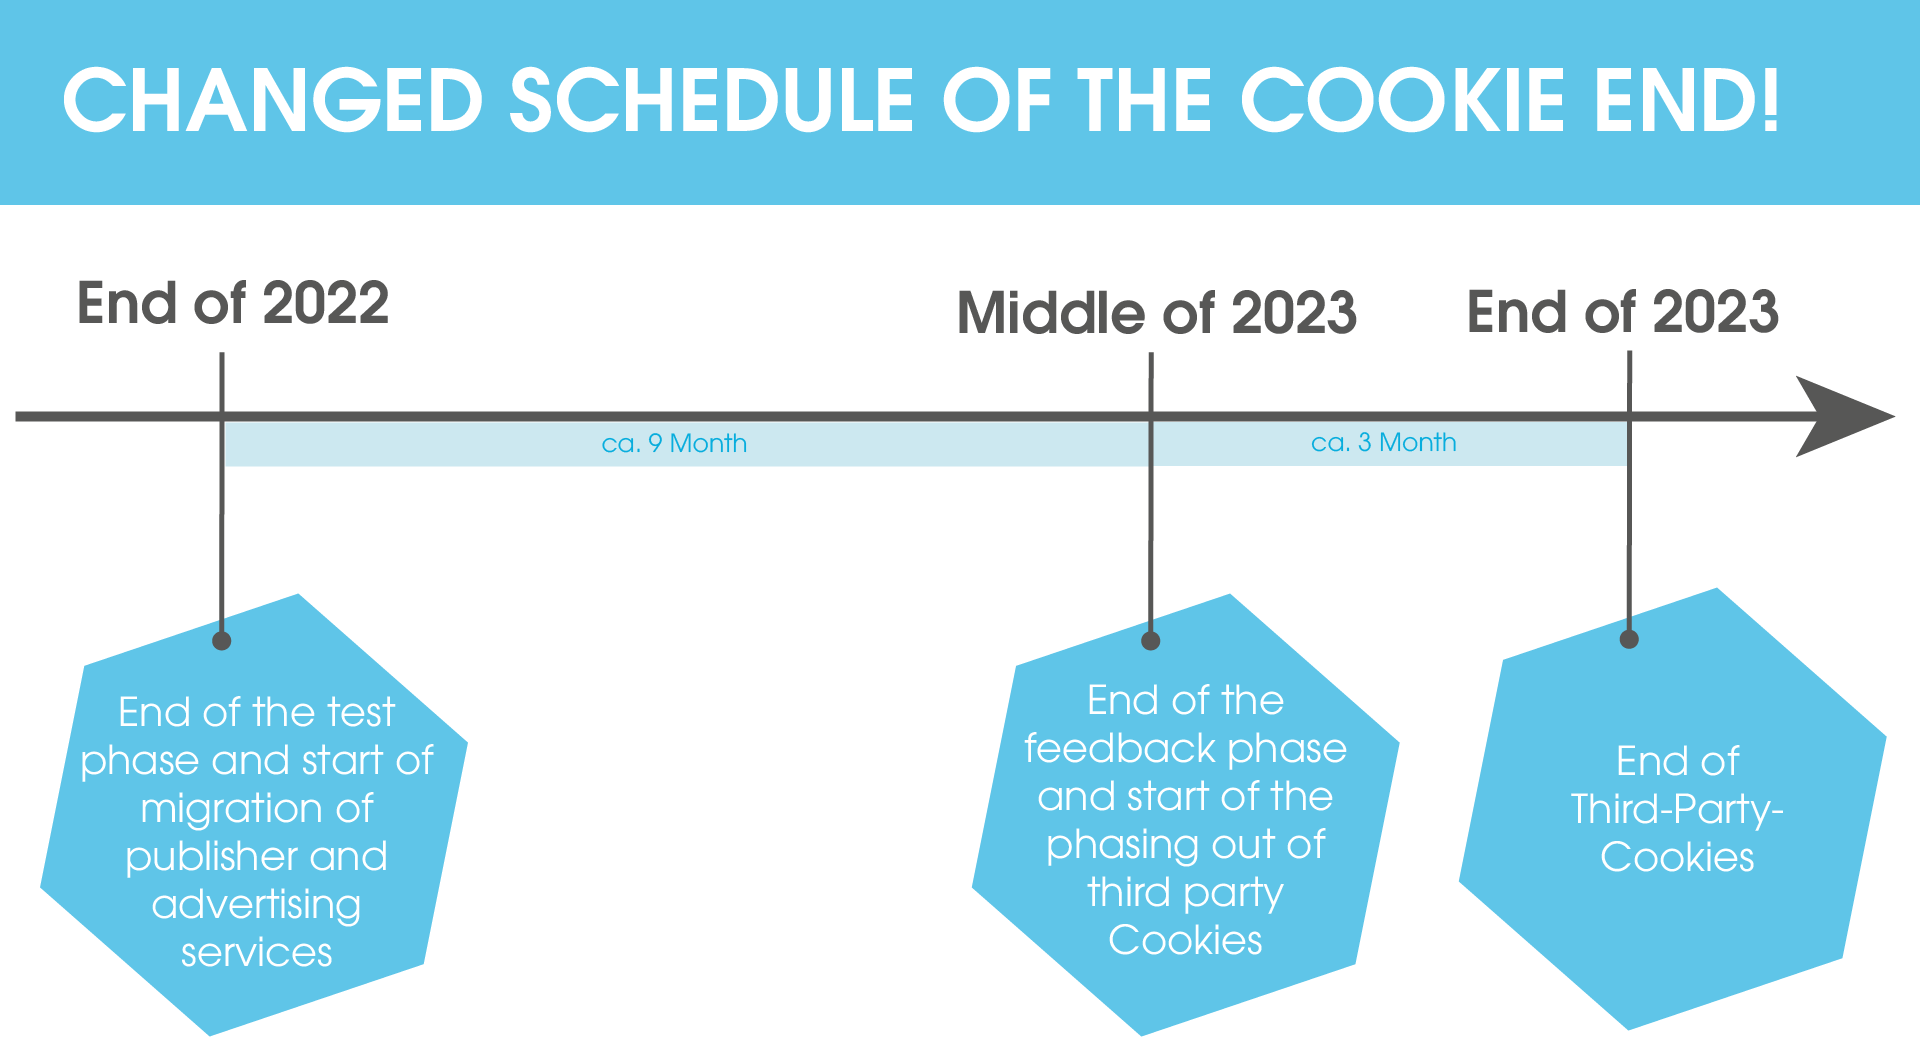 The image shows the new timetable until the end of cookieless tracking. Three phases can be seen here: 1st phase until the end of 2022, which includes the end of the test phase and the start of the migration of publisher and advertising services. 2nd phase until mid-2023, which includes the end of the feedback phase and the start of the phase-out of third-party cookies 3rd phase until the end of 2023, at which time third-party cookies will be completely terminated as a tracking option.